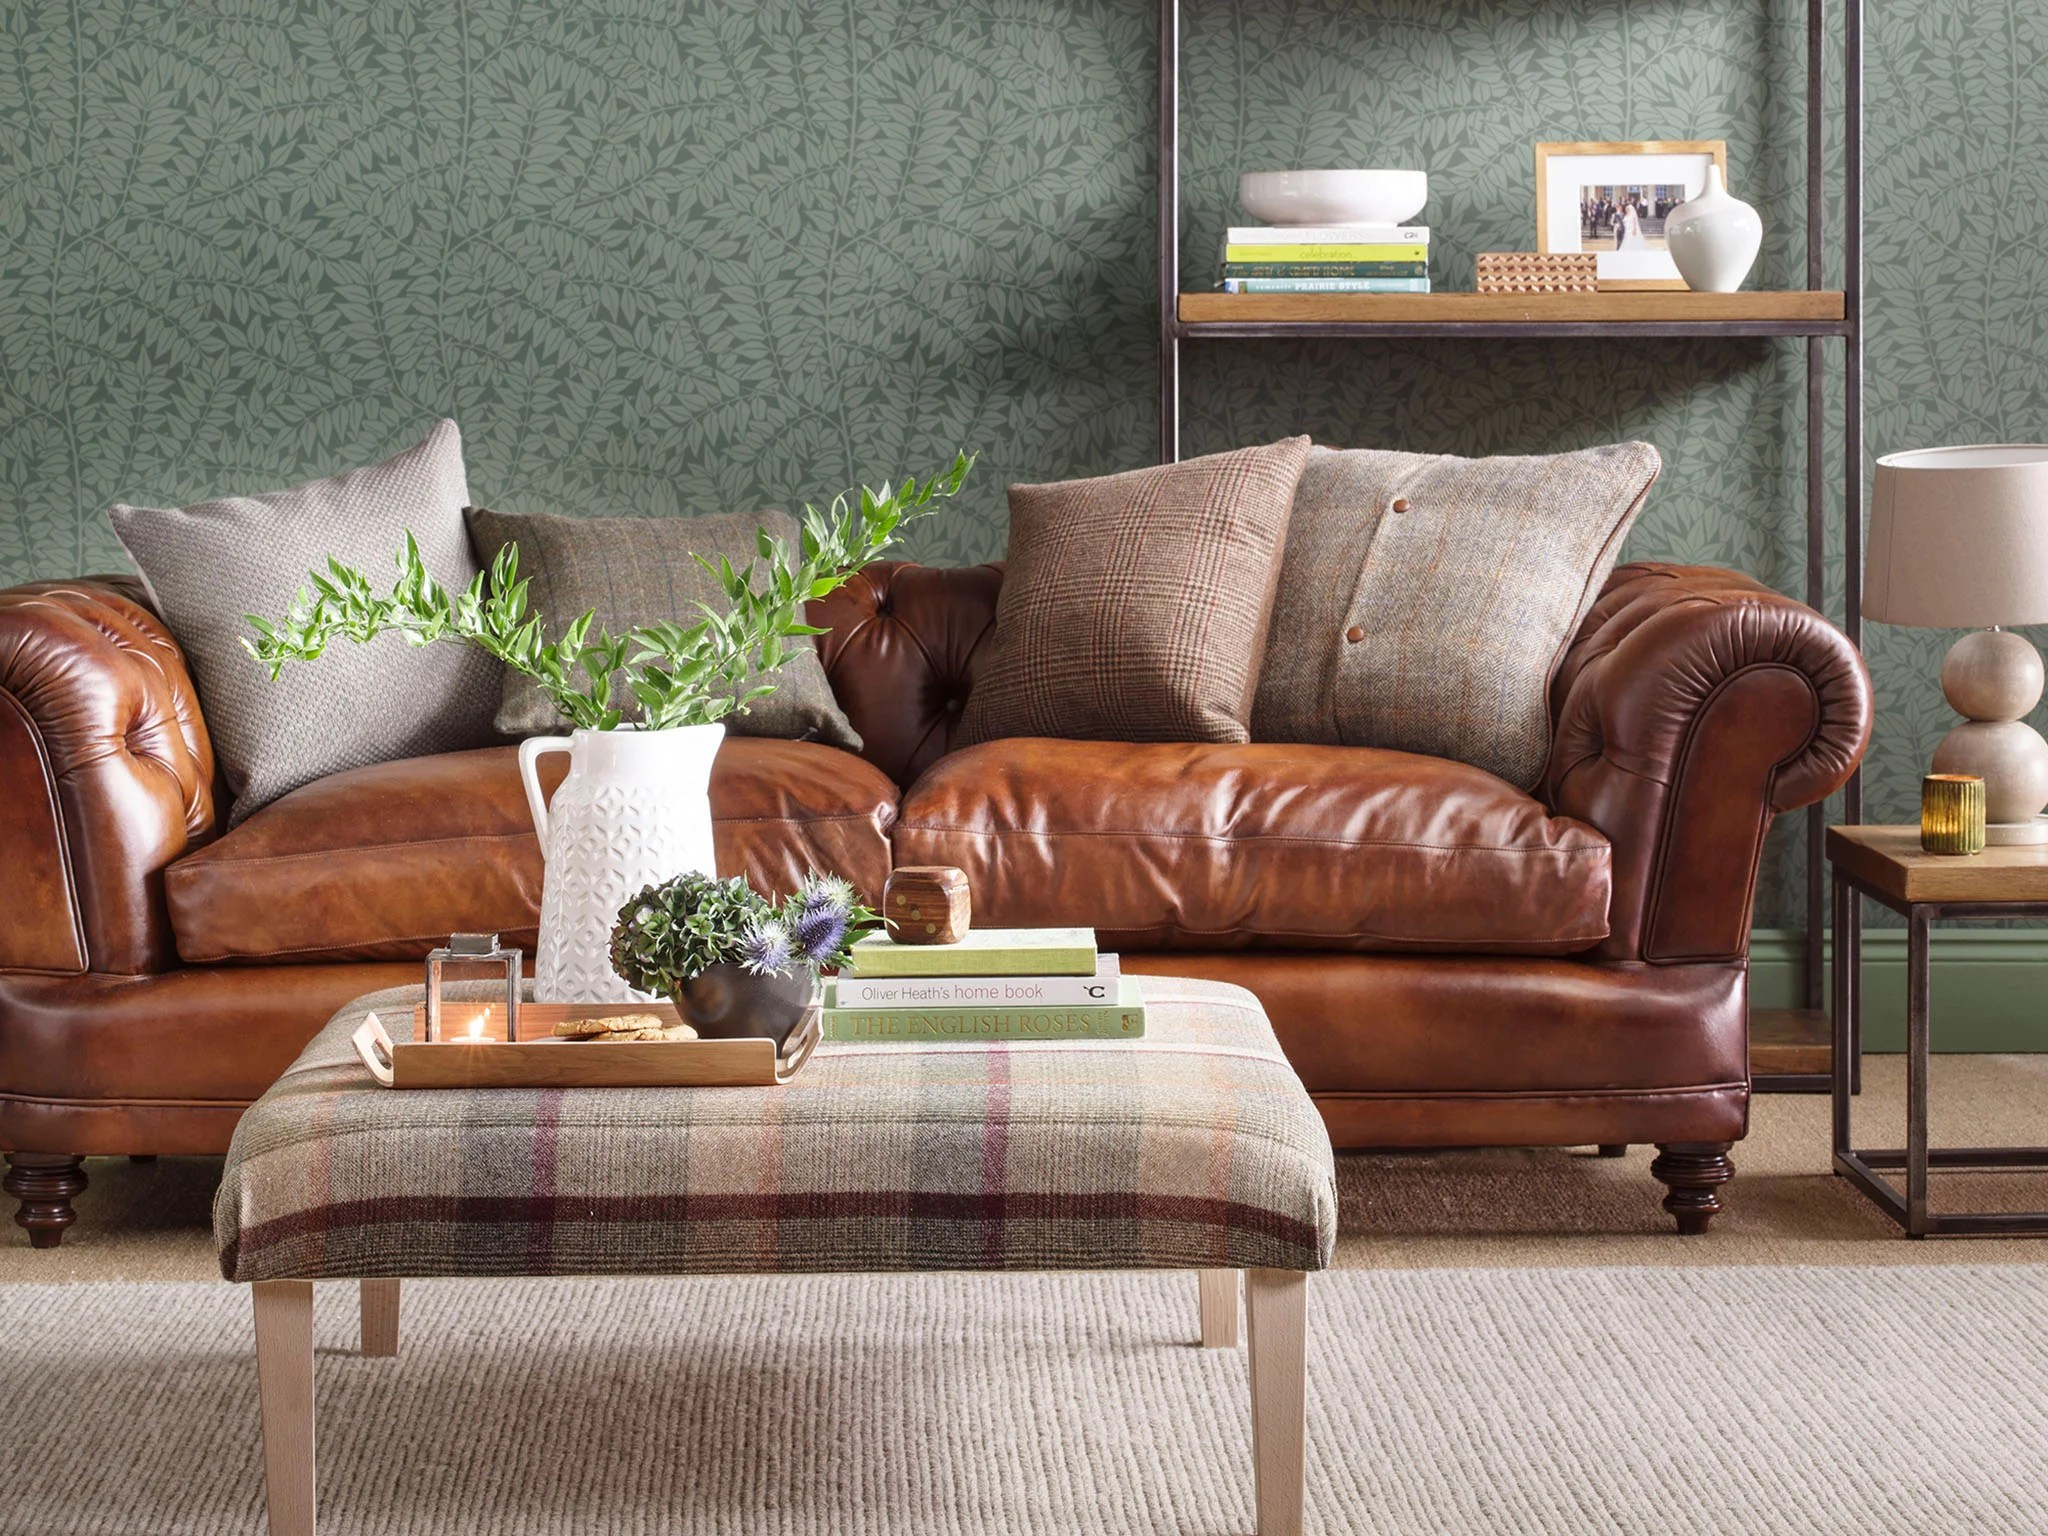 best cheap sofas uk pottery barn cameron upholstered sofa reviews 10 leather the independent a version won t bobble like fabric can which instead gets better with